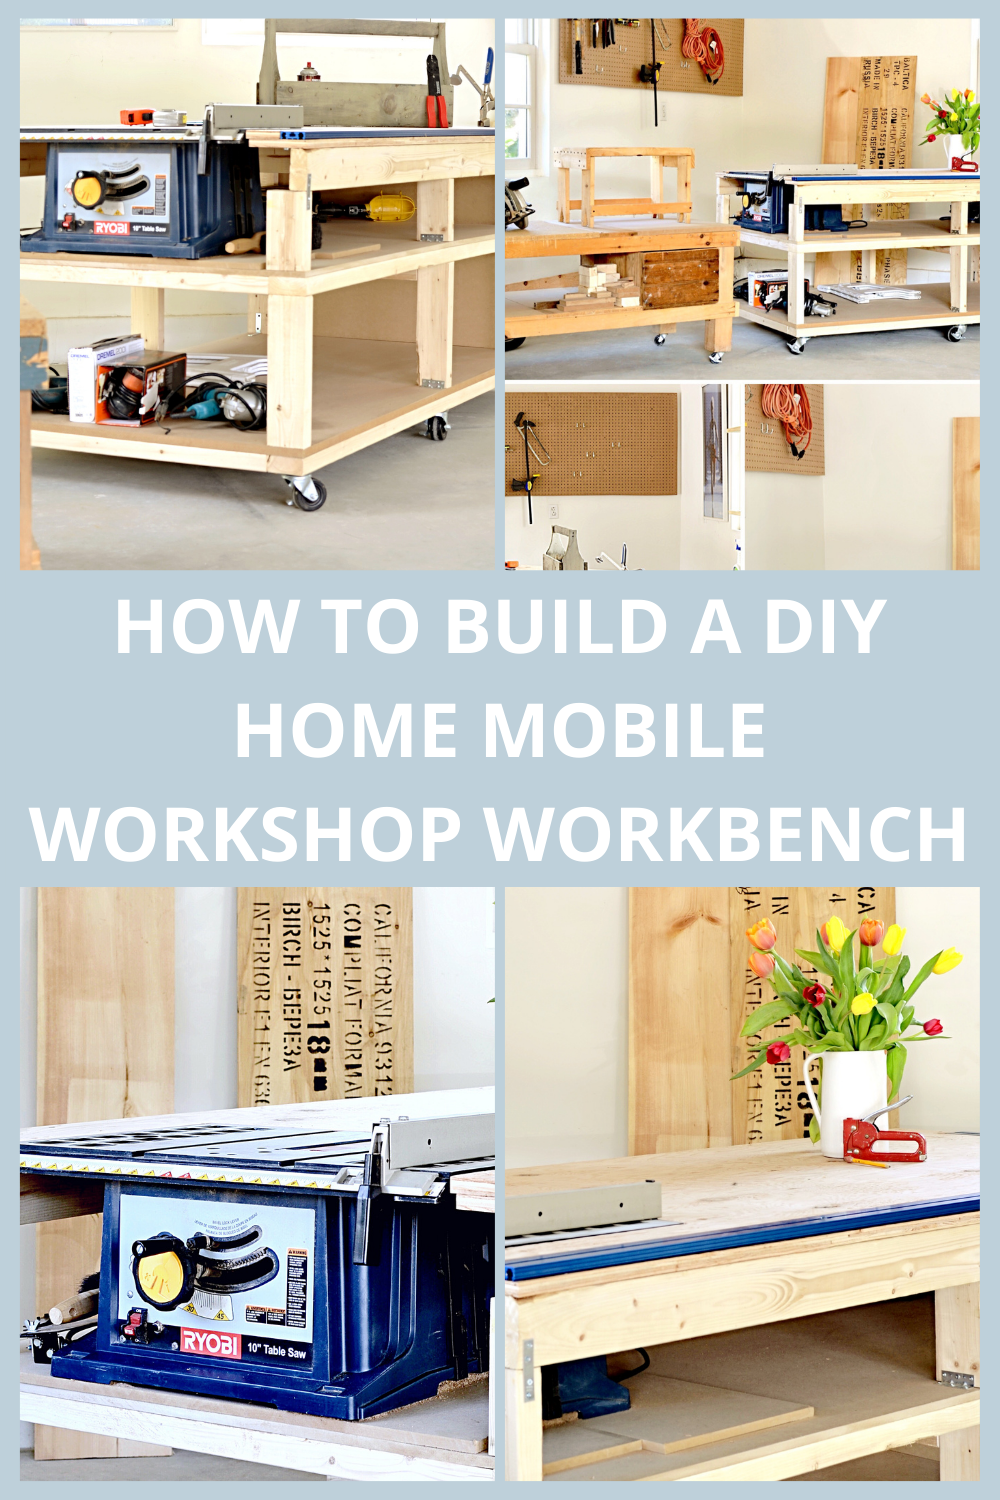 HOW TO BUILD A DIY HOME MOBILE WORKSHOP WORKBENCH